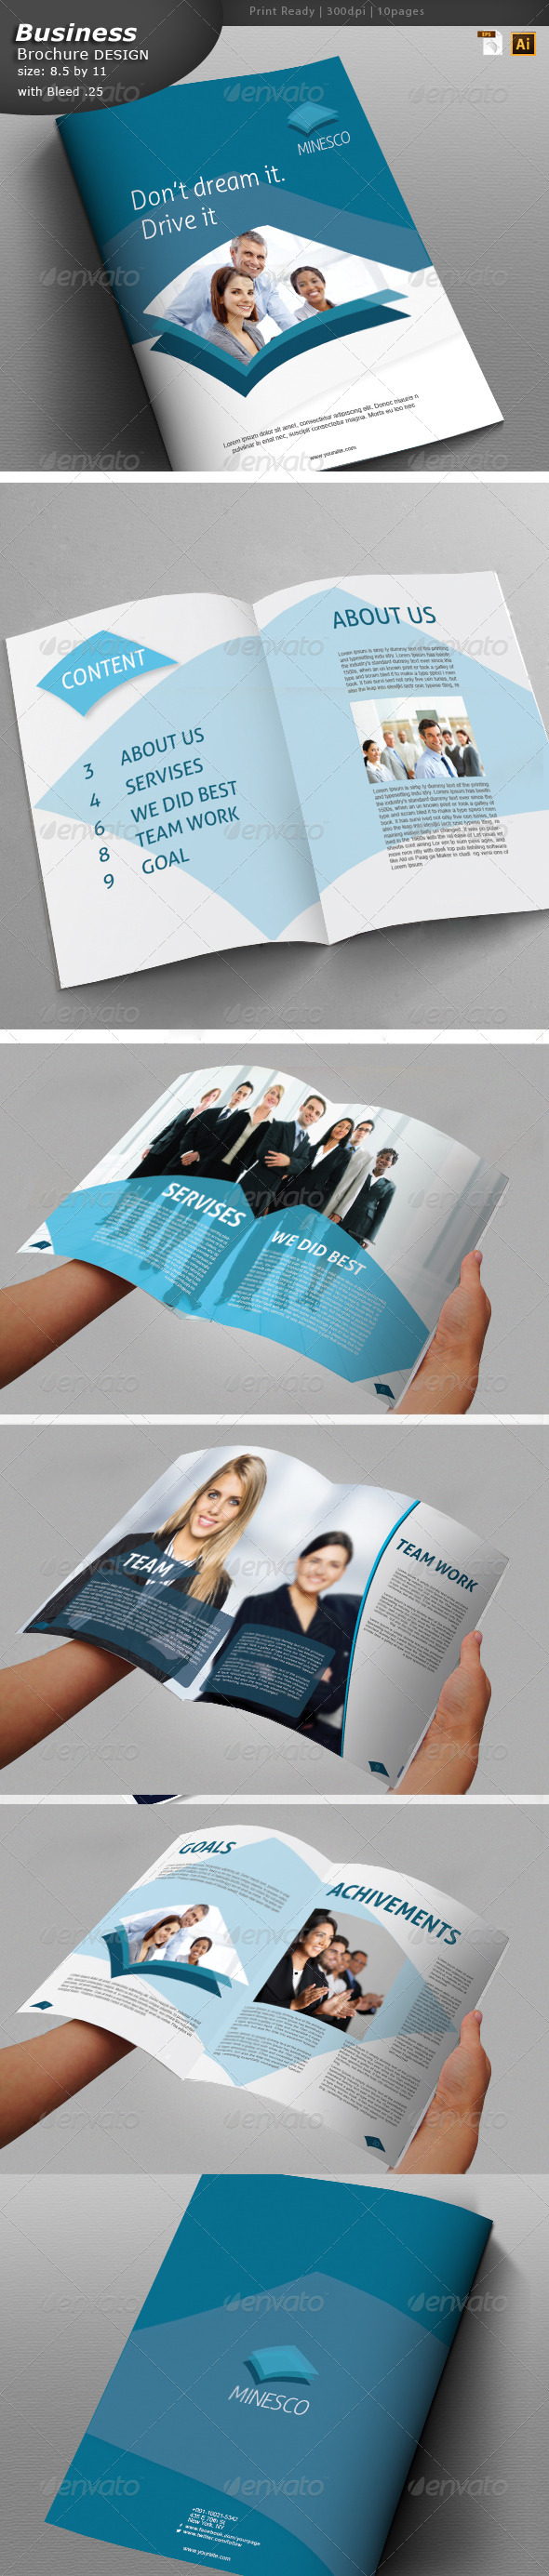 GraphicRiver Business Brochure Design 5939928